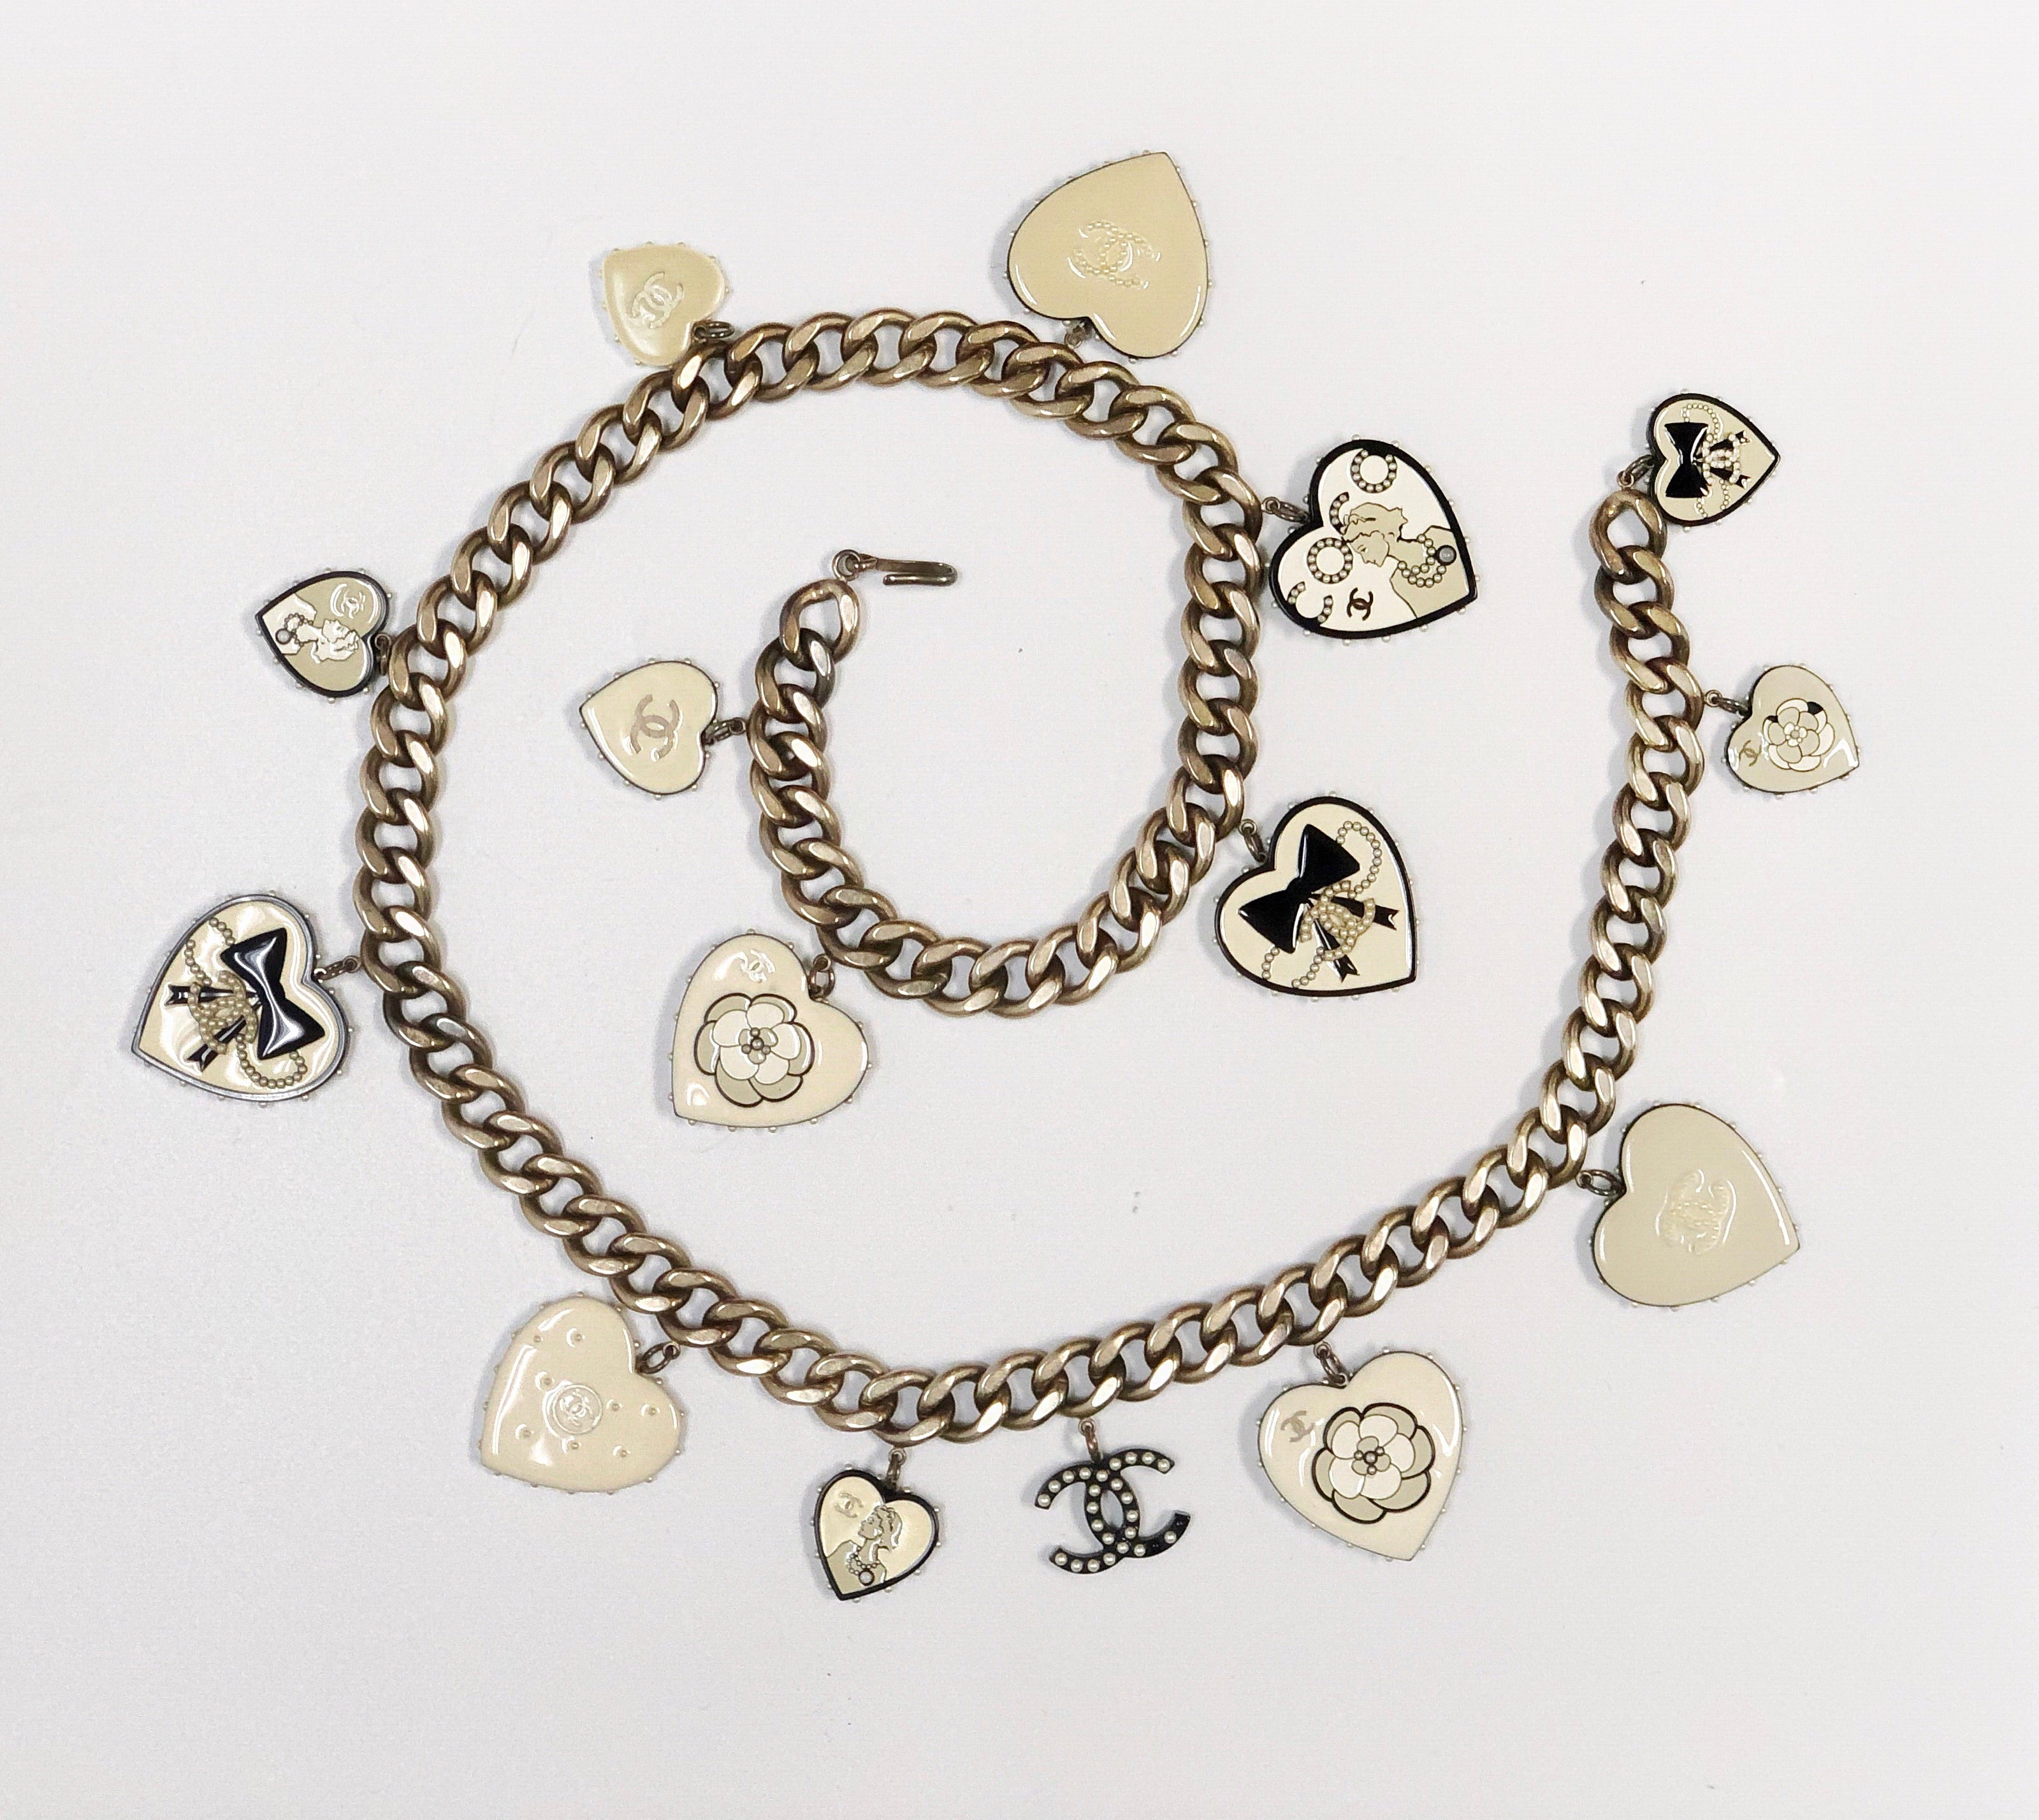 Chanel Heart Charm Belt or Necklace